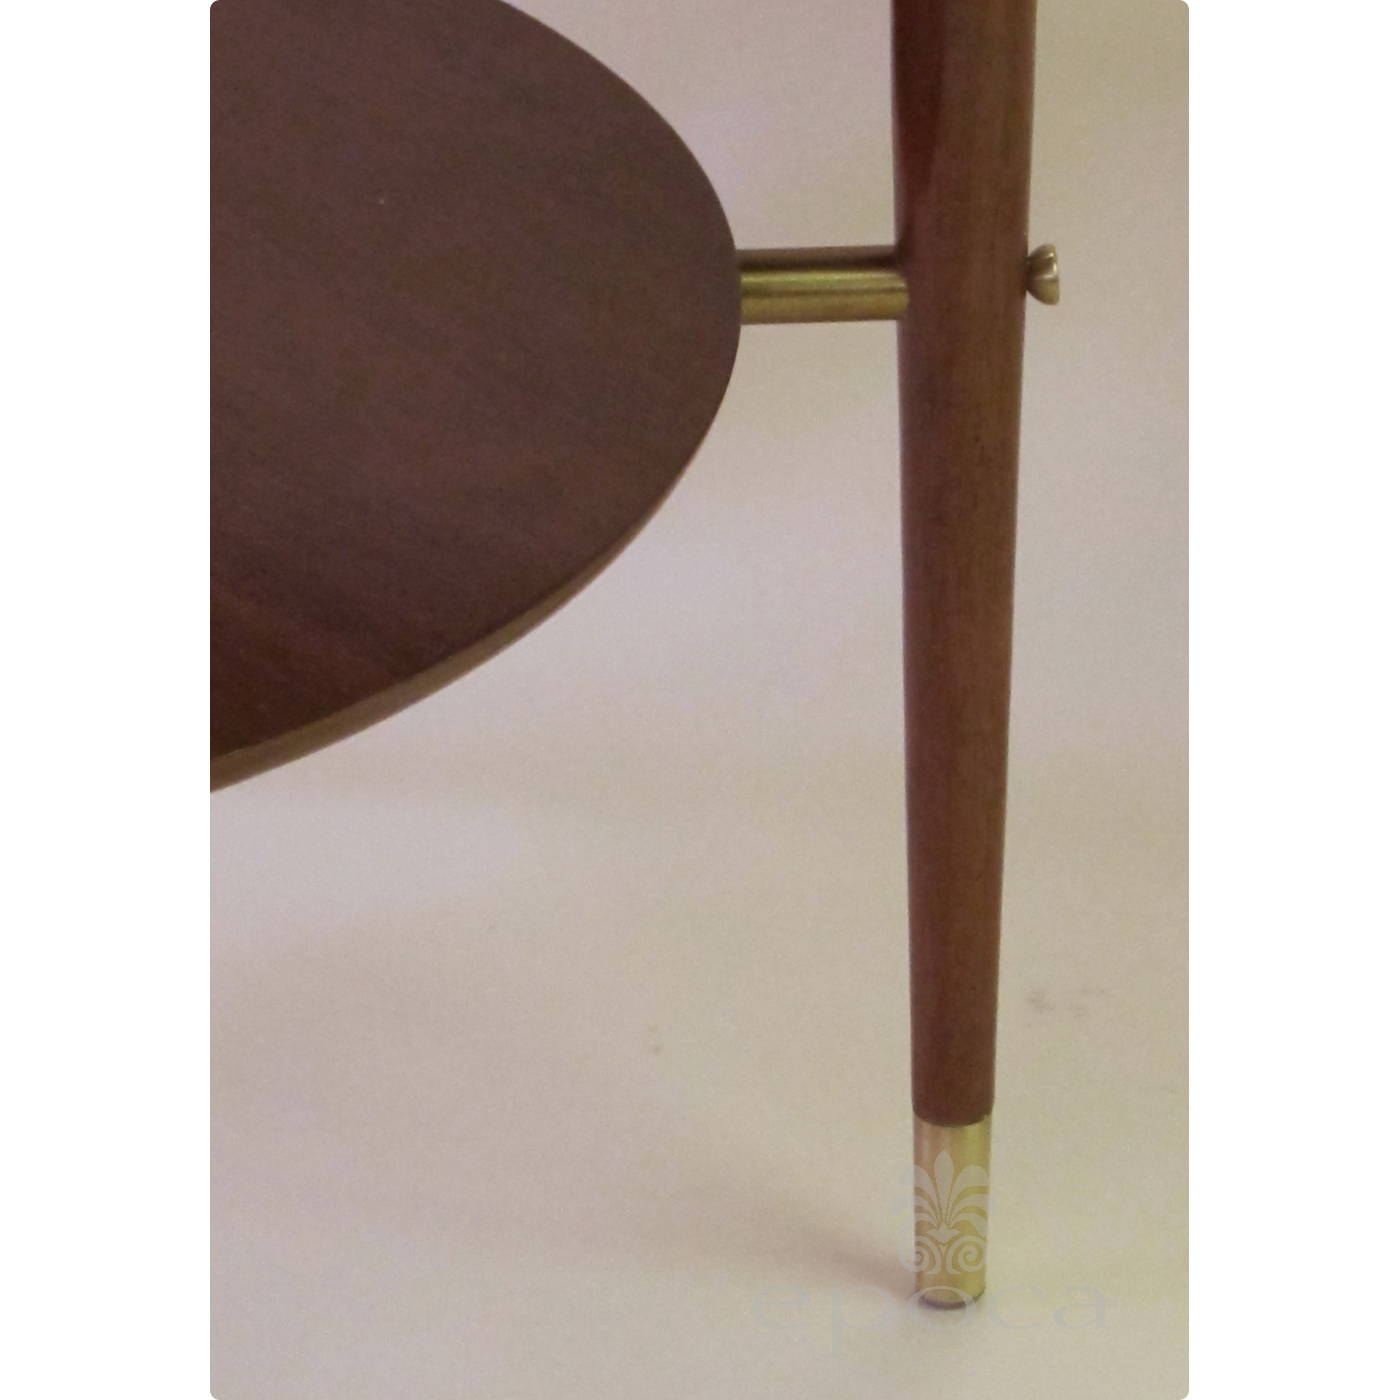 ... Stylish And Sleek Italian Mid Century Circular Side Table With Glass  Top And Brass Fittings